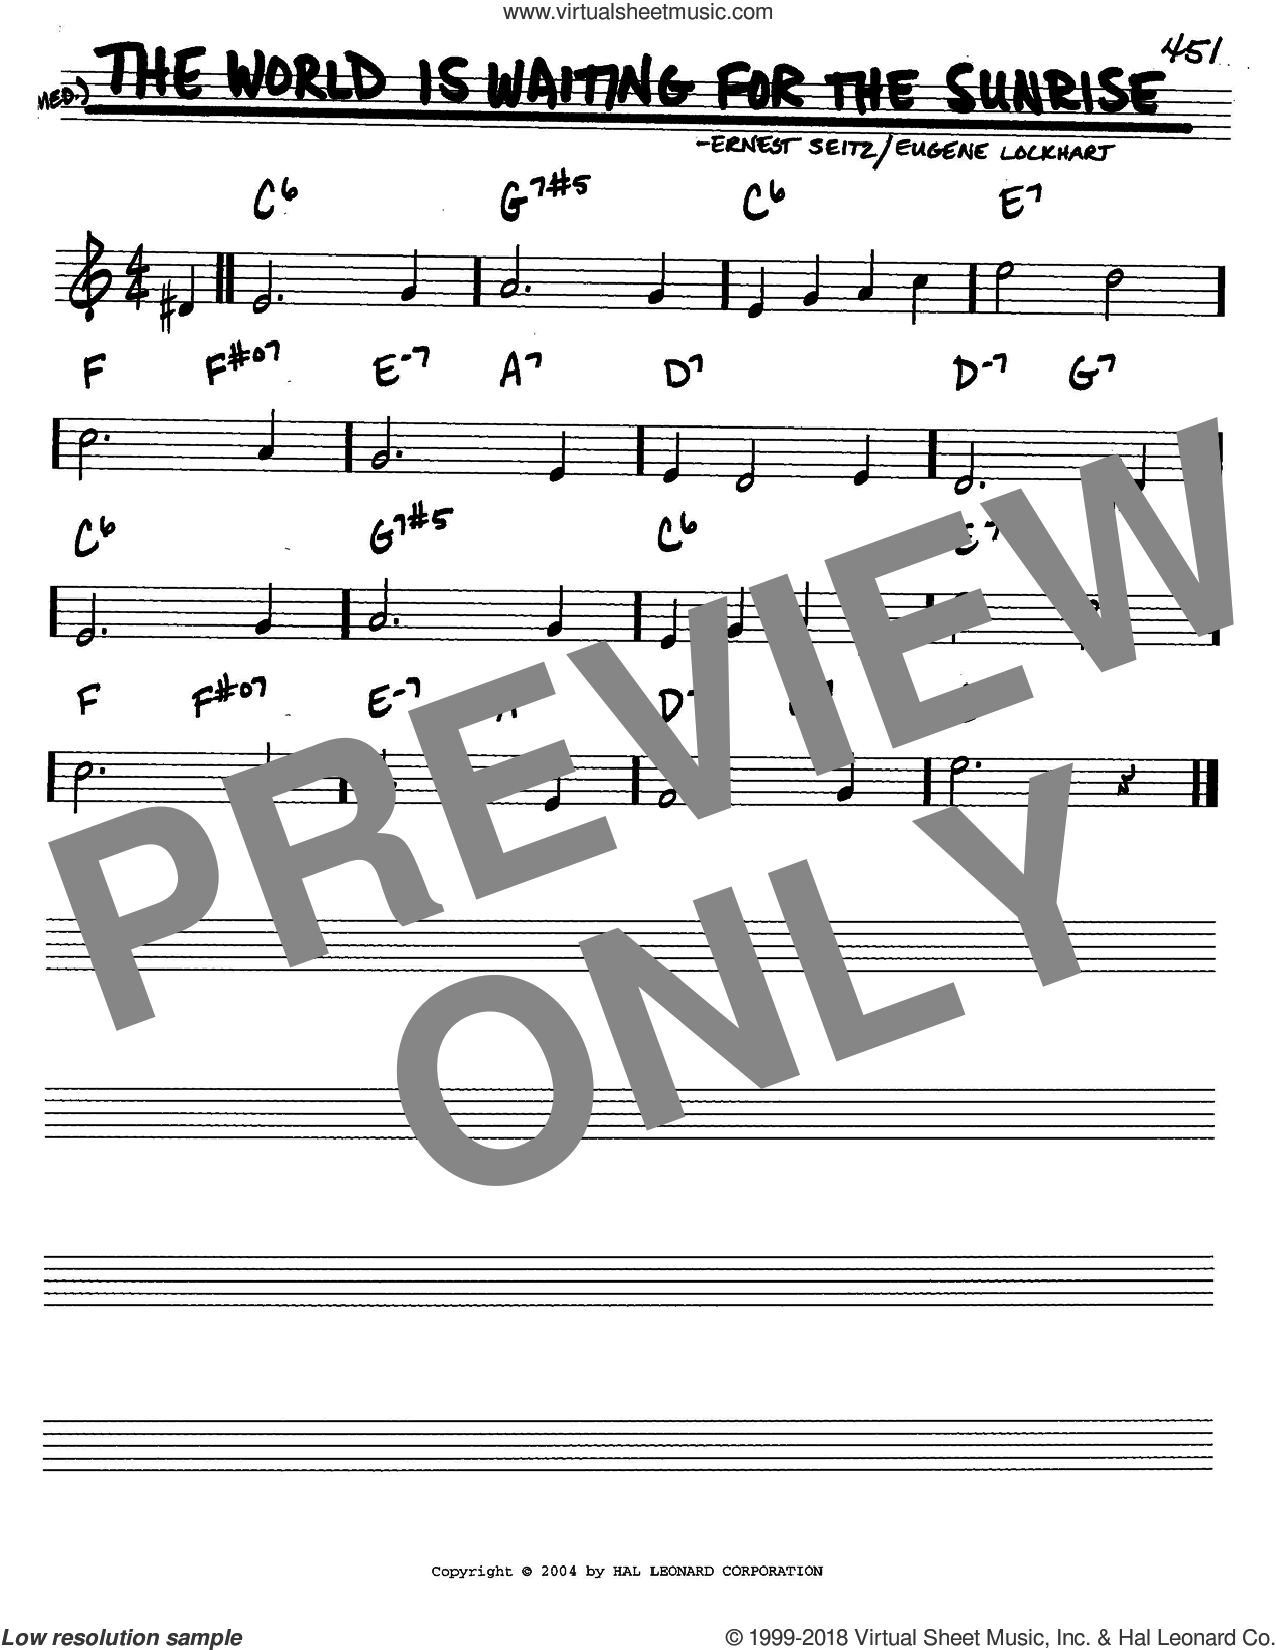 The World Is Waiting For The Sunrise sheet music for voice and other instruments (C) by Ernest Seitz and Eugene Lockhart. Score Image Preview.